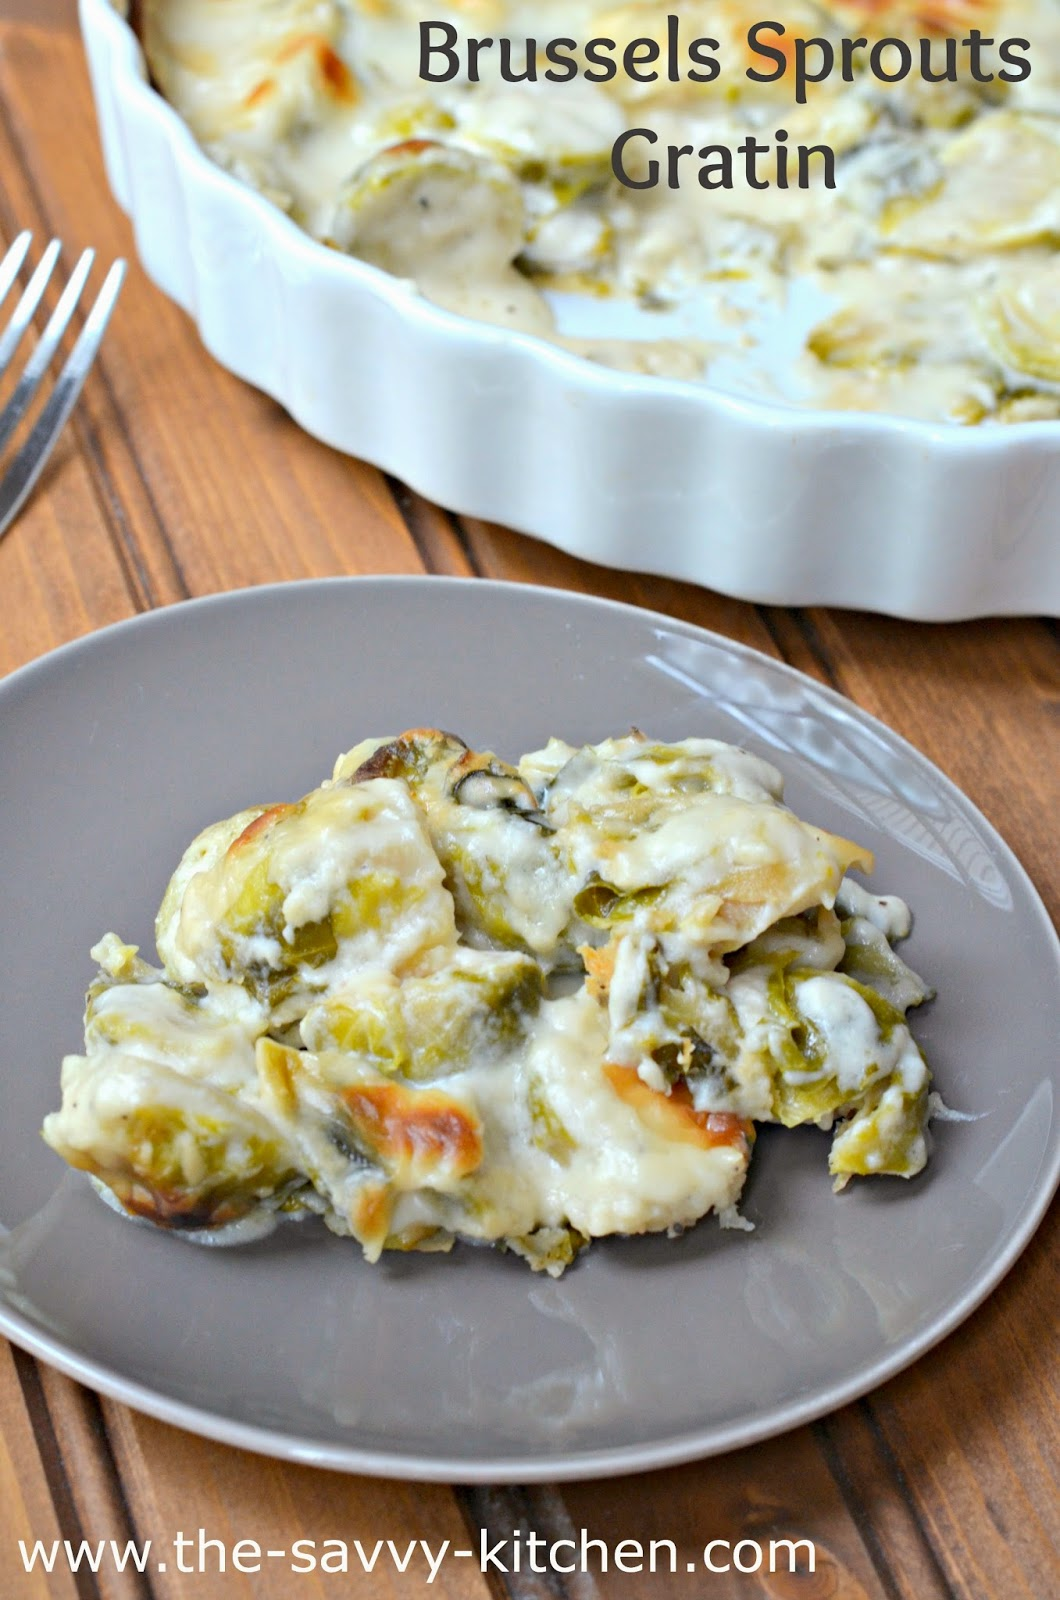 Smoky brussels sprouts gratin - Cook and Post